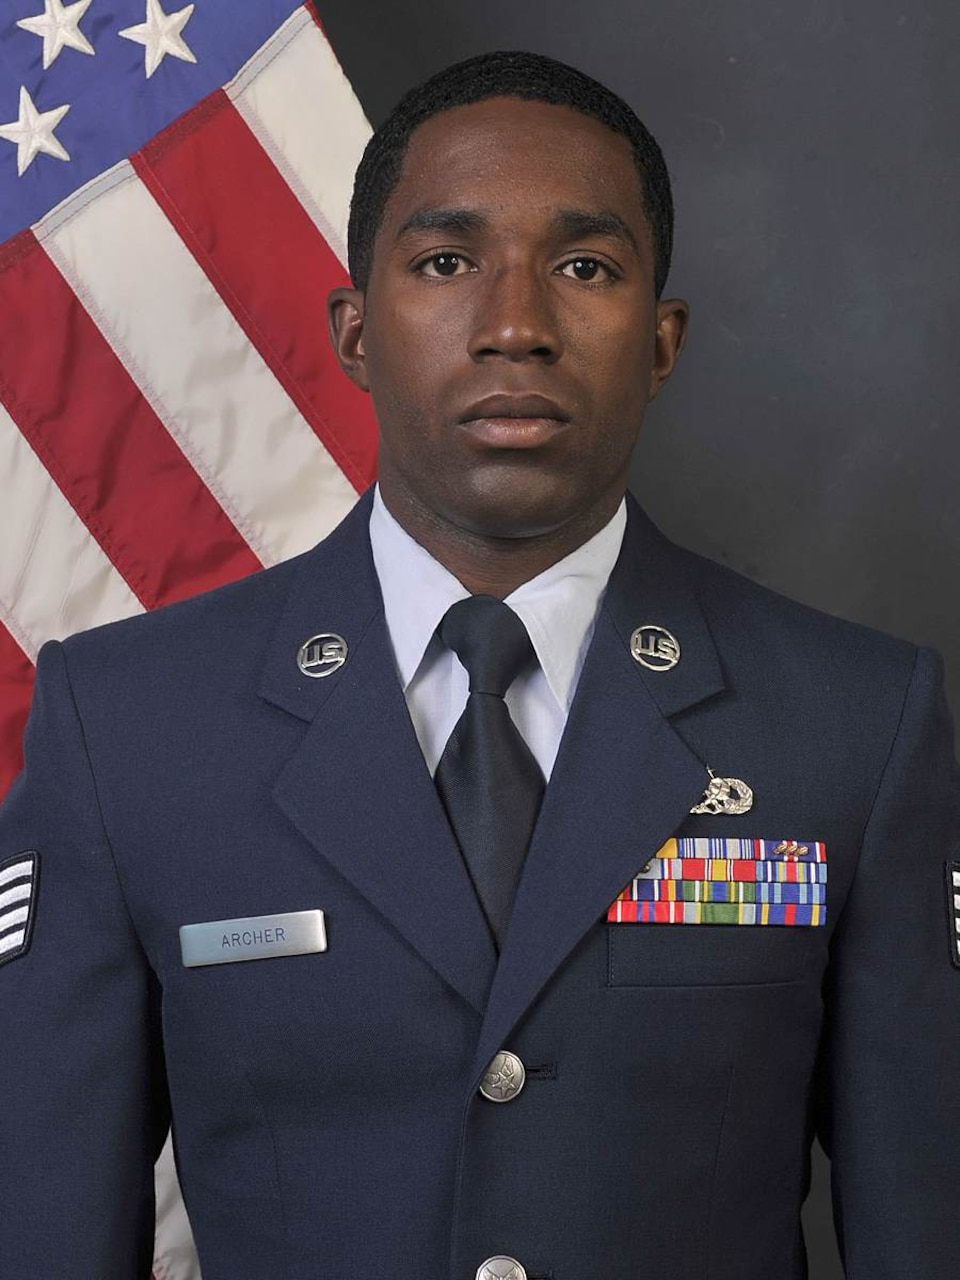 A man wearing dress blues looks at the camera.